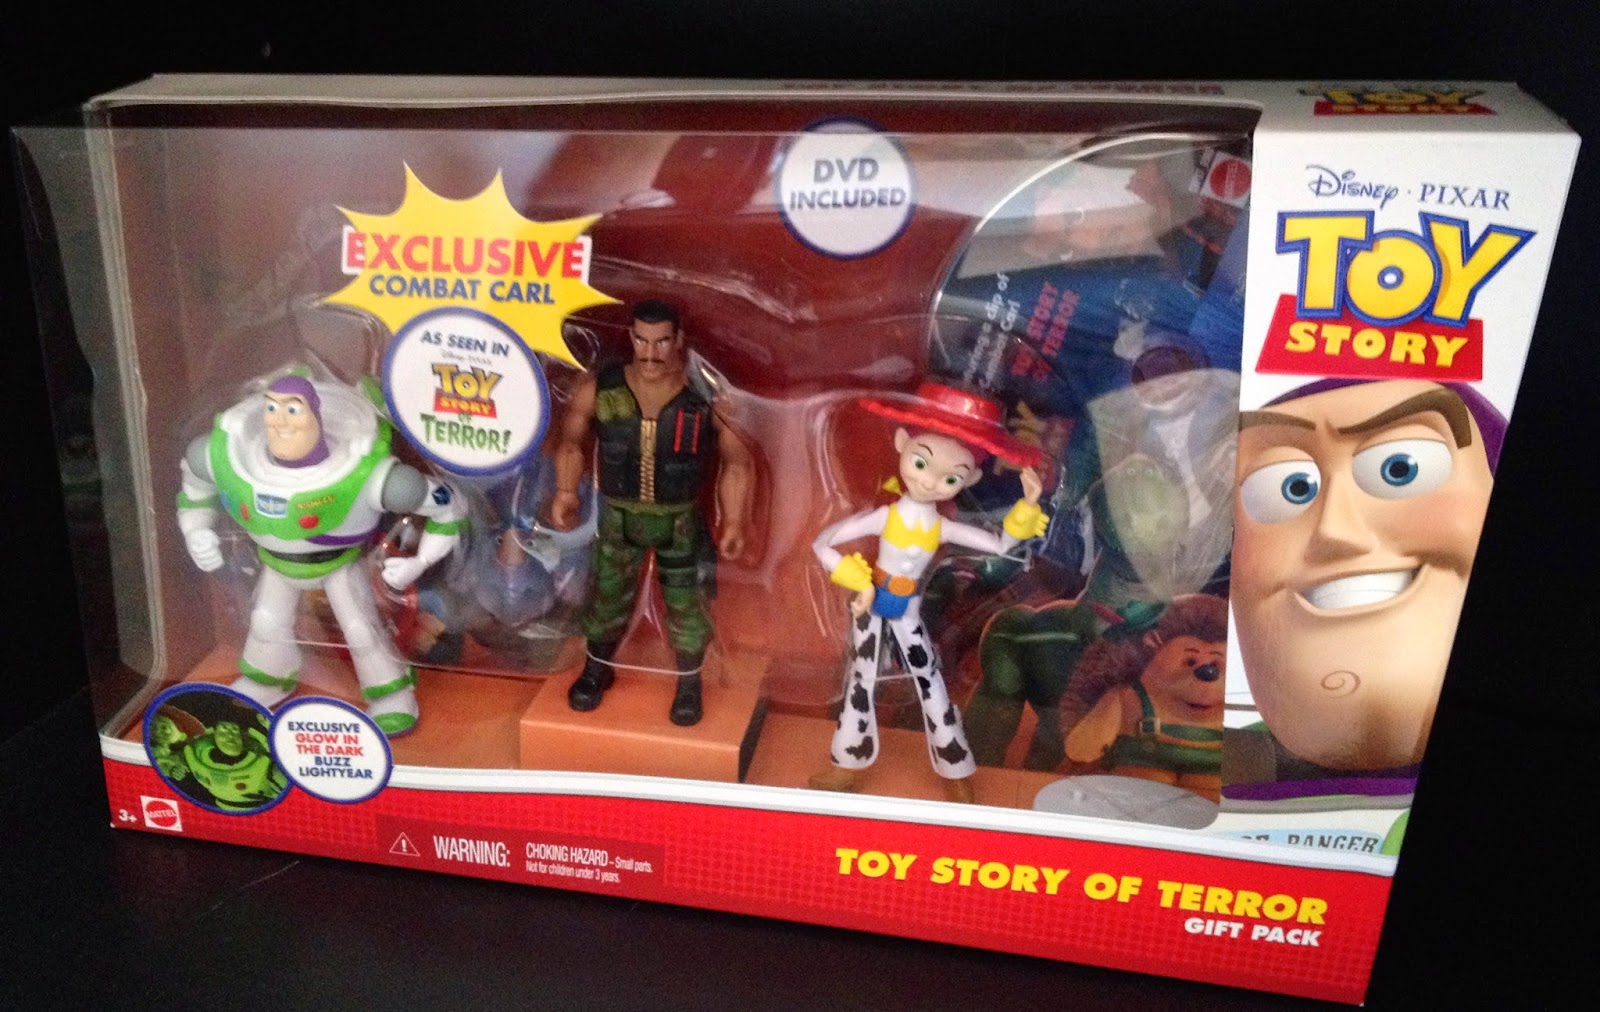 Toy story of terror 1 2 3 buzz lightyear of star command for sale - Toy Story Of Terror Figure 3 Pack Gift Pack Updated